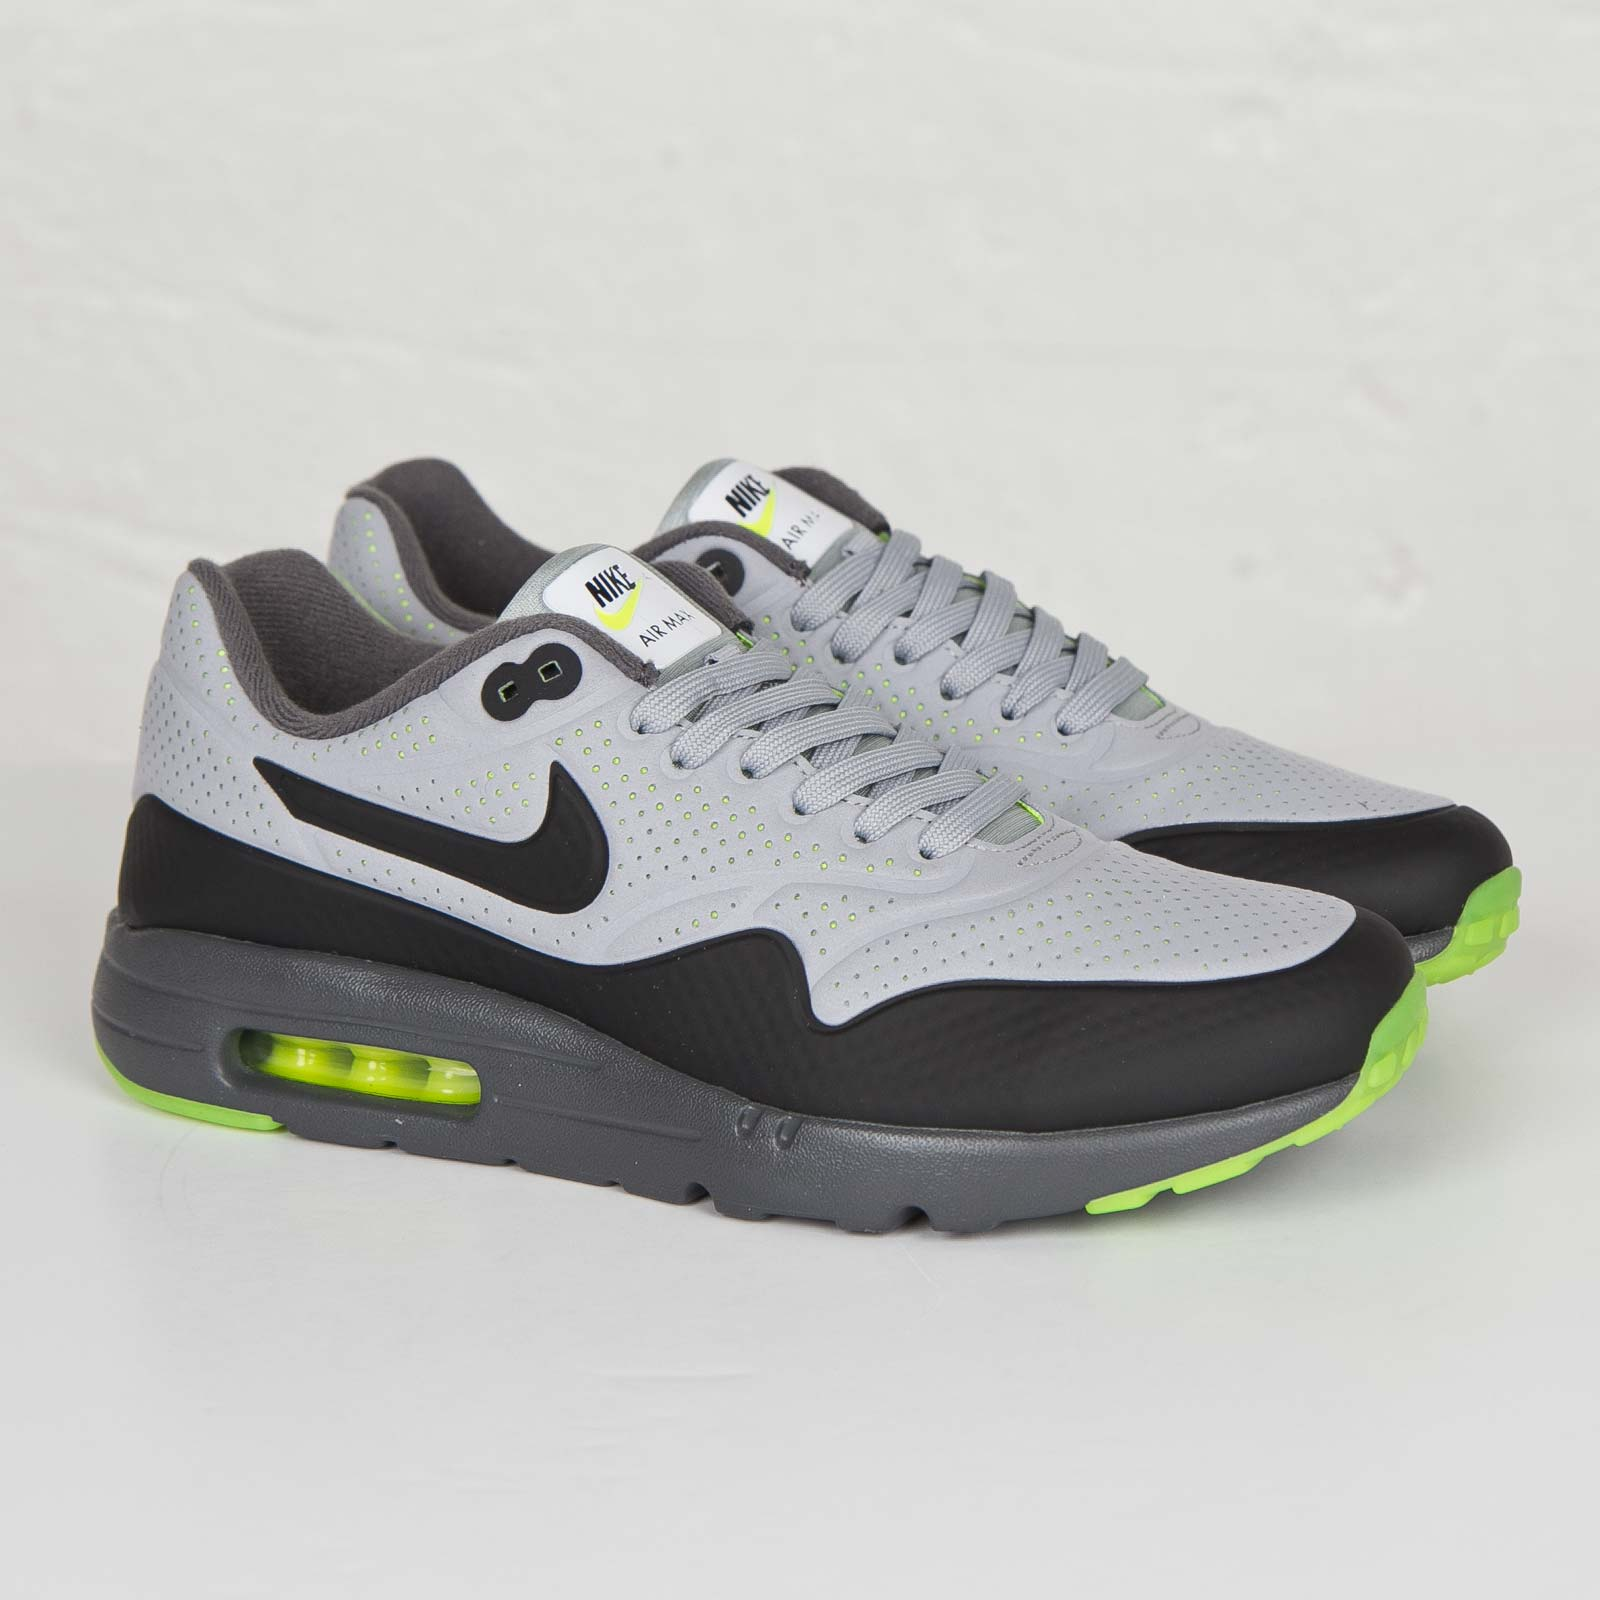 5f50a382748a Nike Air Max 1 Ultra Moire - 705297-007 - Sneakersnstuff